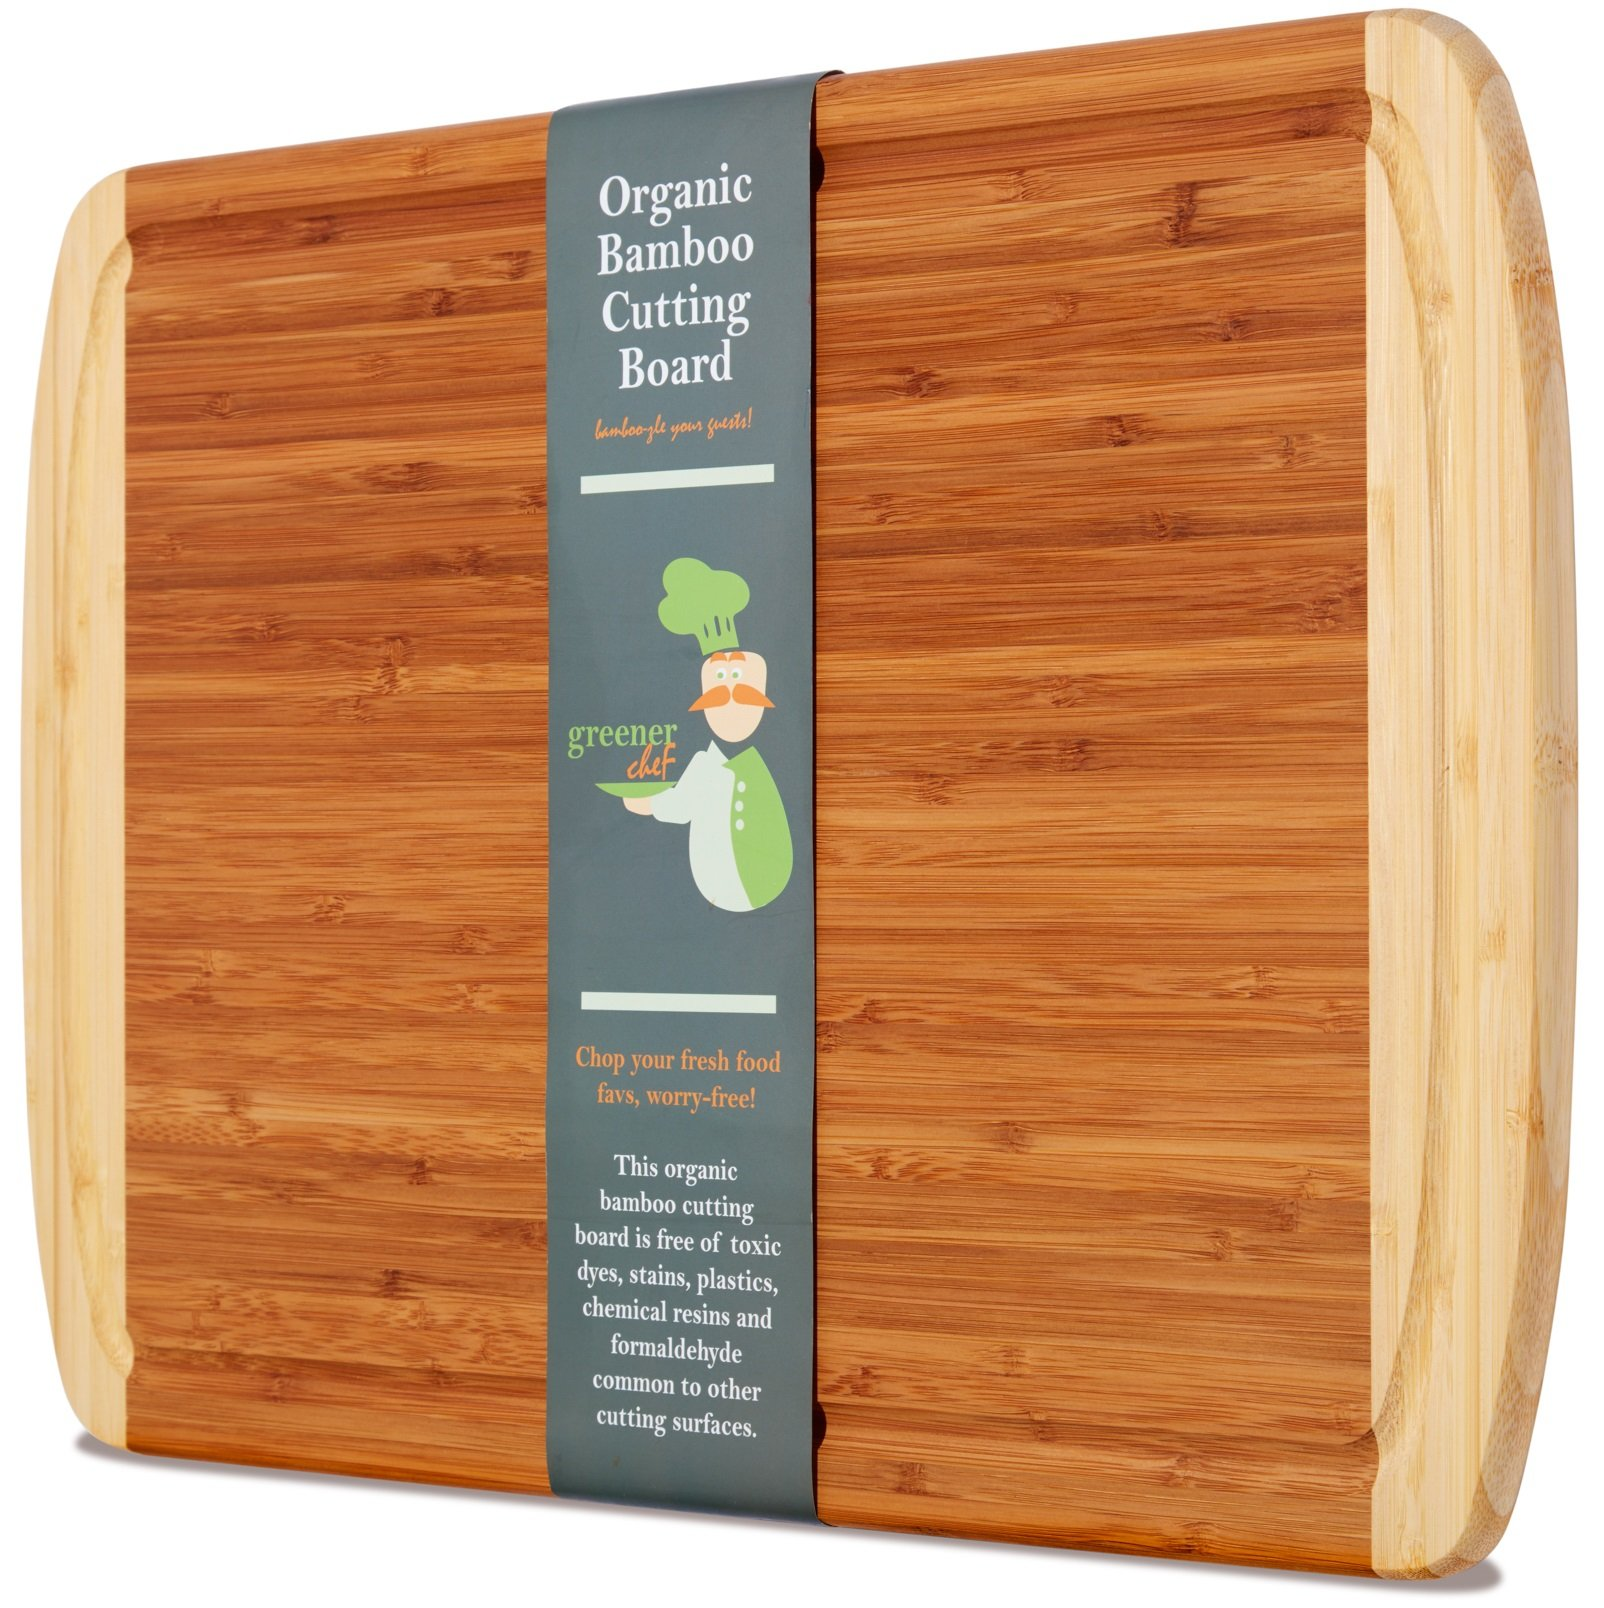 Extra Large Organic Bamboo Cutting Board for Kitchen - NEW CRACK-FREE DESIGN - Best Wood Chopping Boards w/Juice Groove for Carving Meat, Wooden Butcher Block for Vegetables & Serving Tray for Cheese by Greener Chef (Image #1)